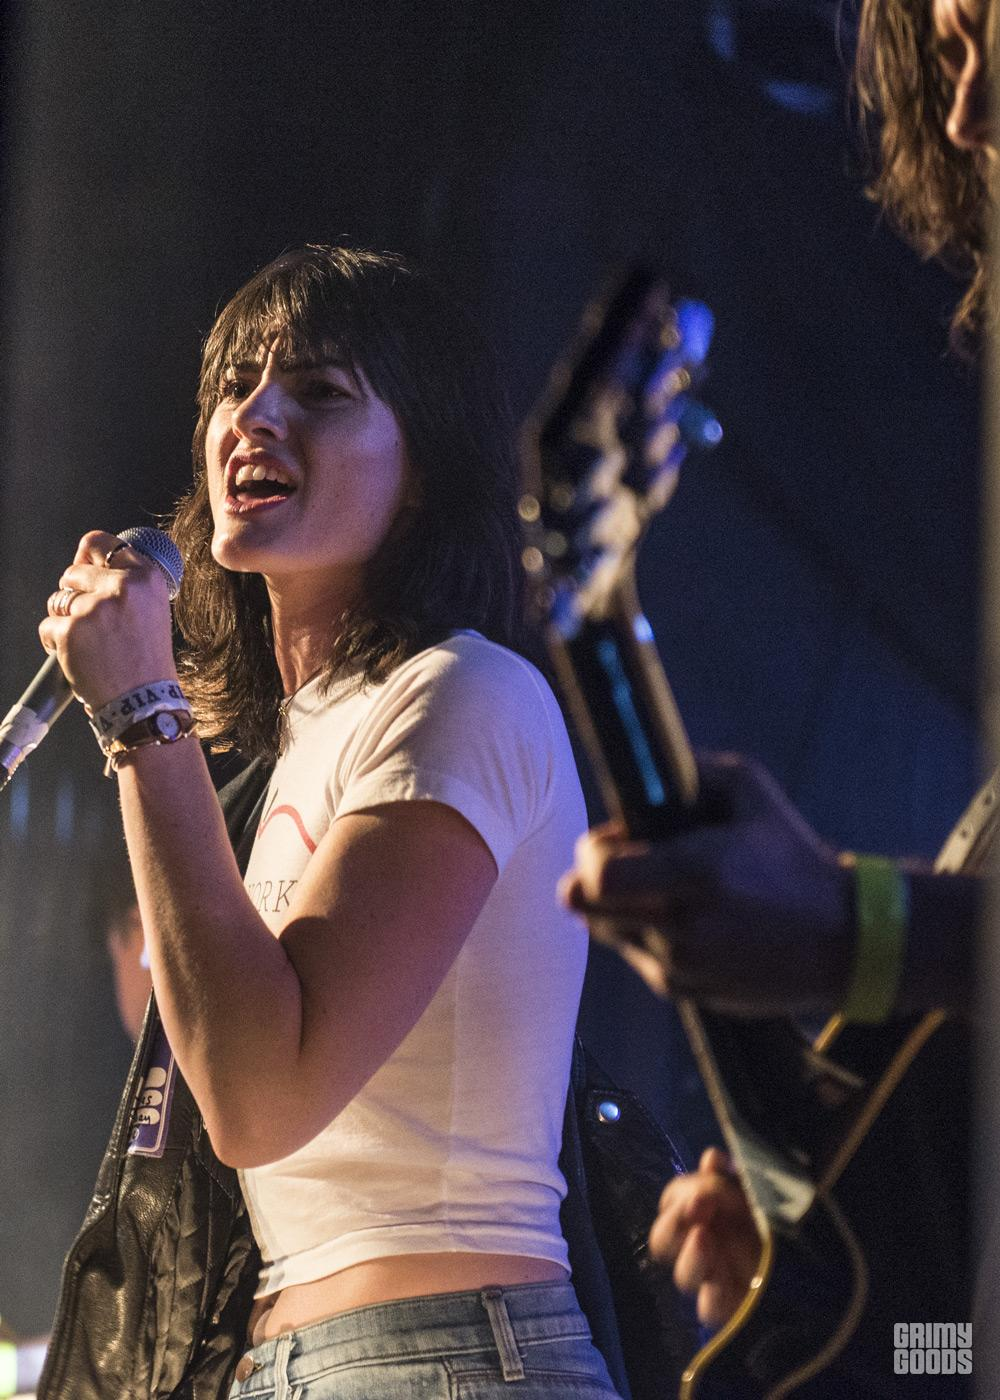 The Preatures photos